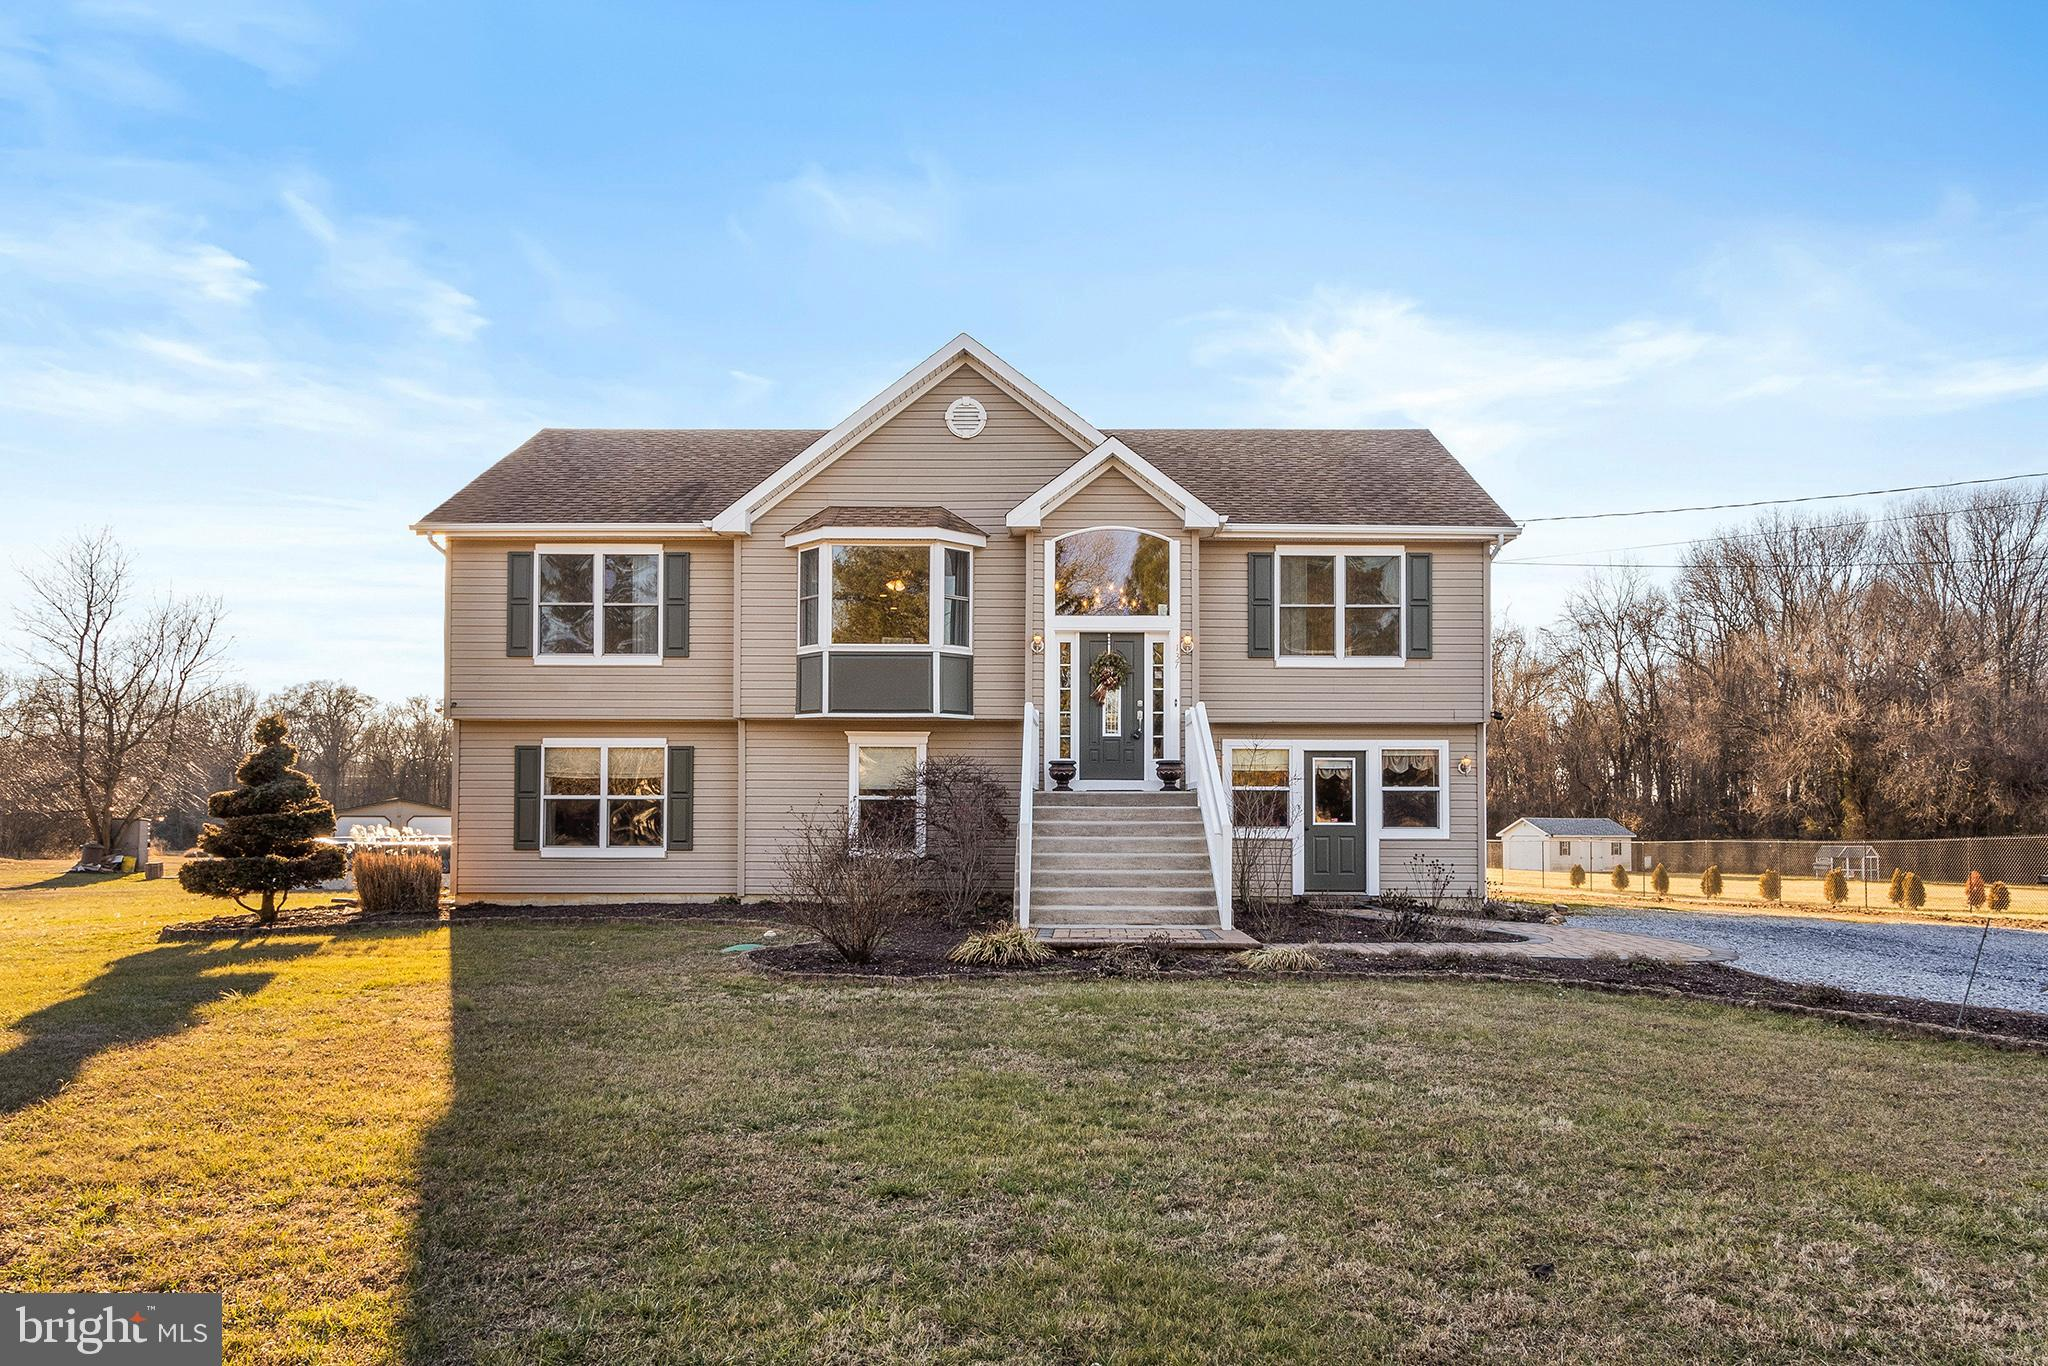 137 W COHAWKIN ROAD, CLARKSBORO, NJ 08020